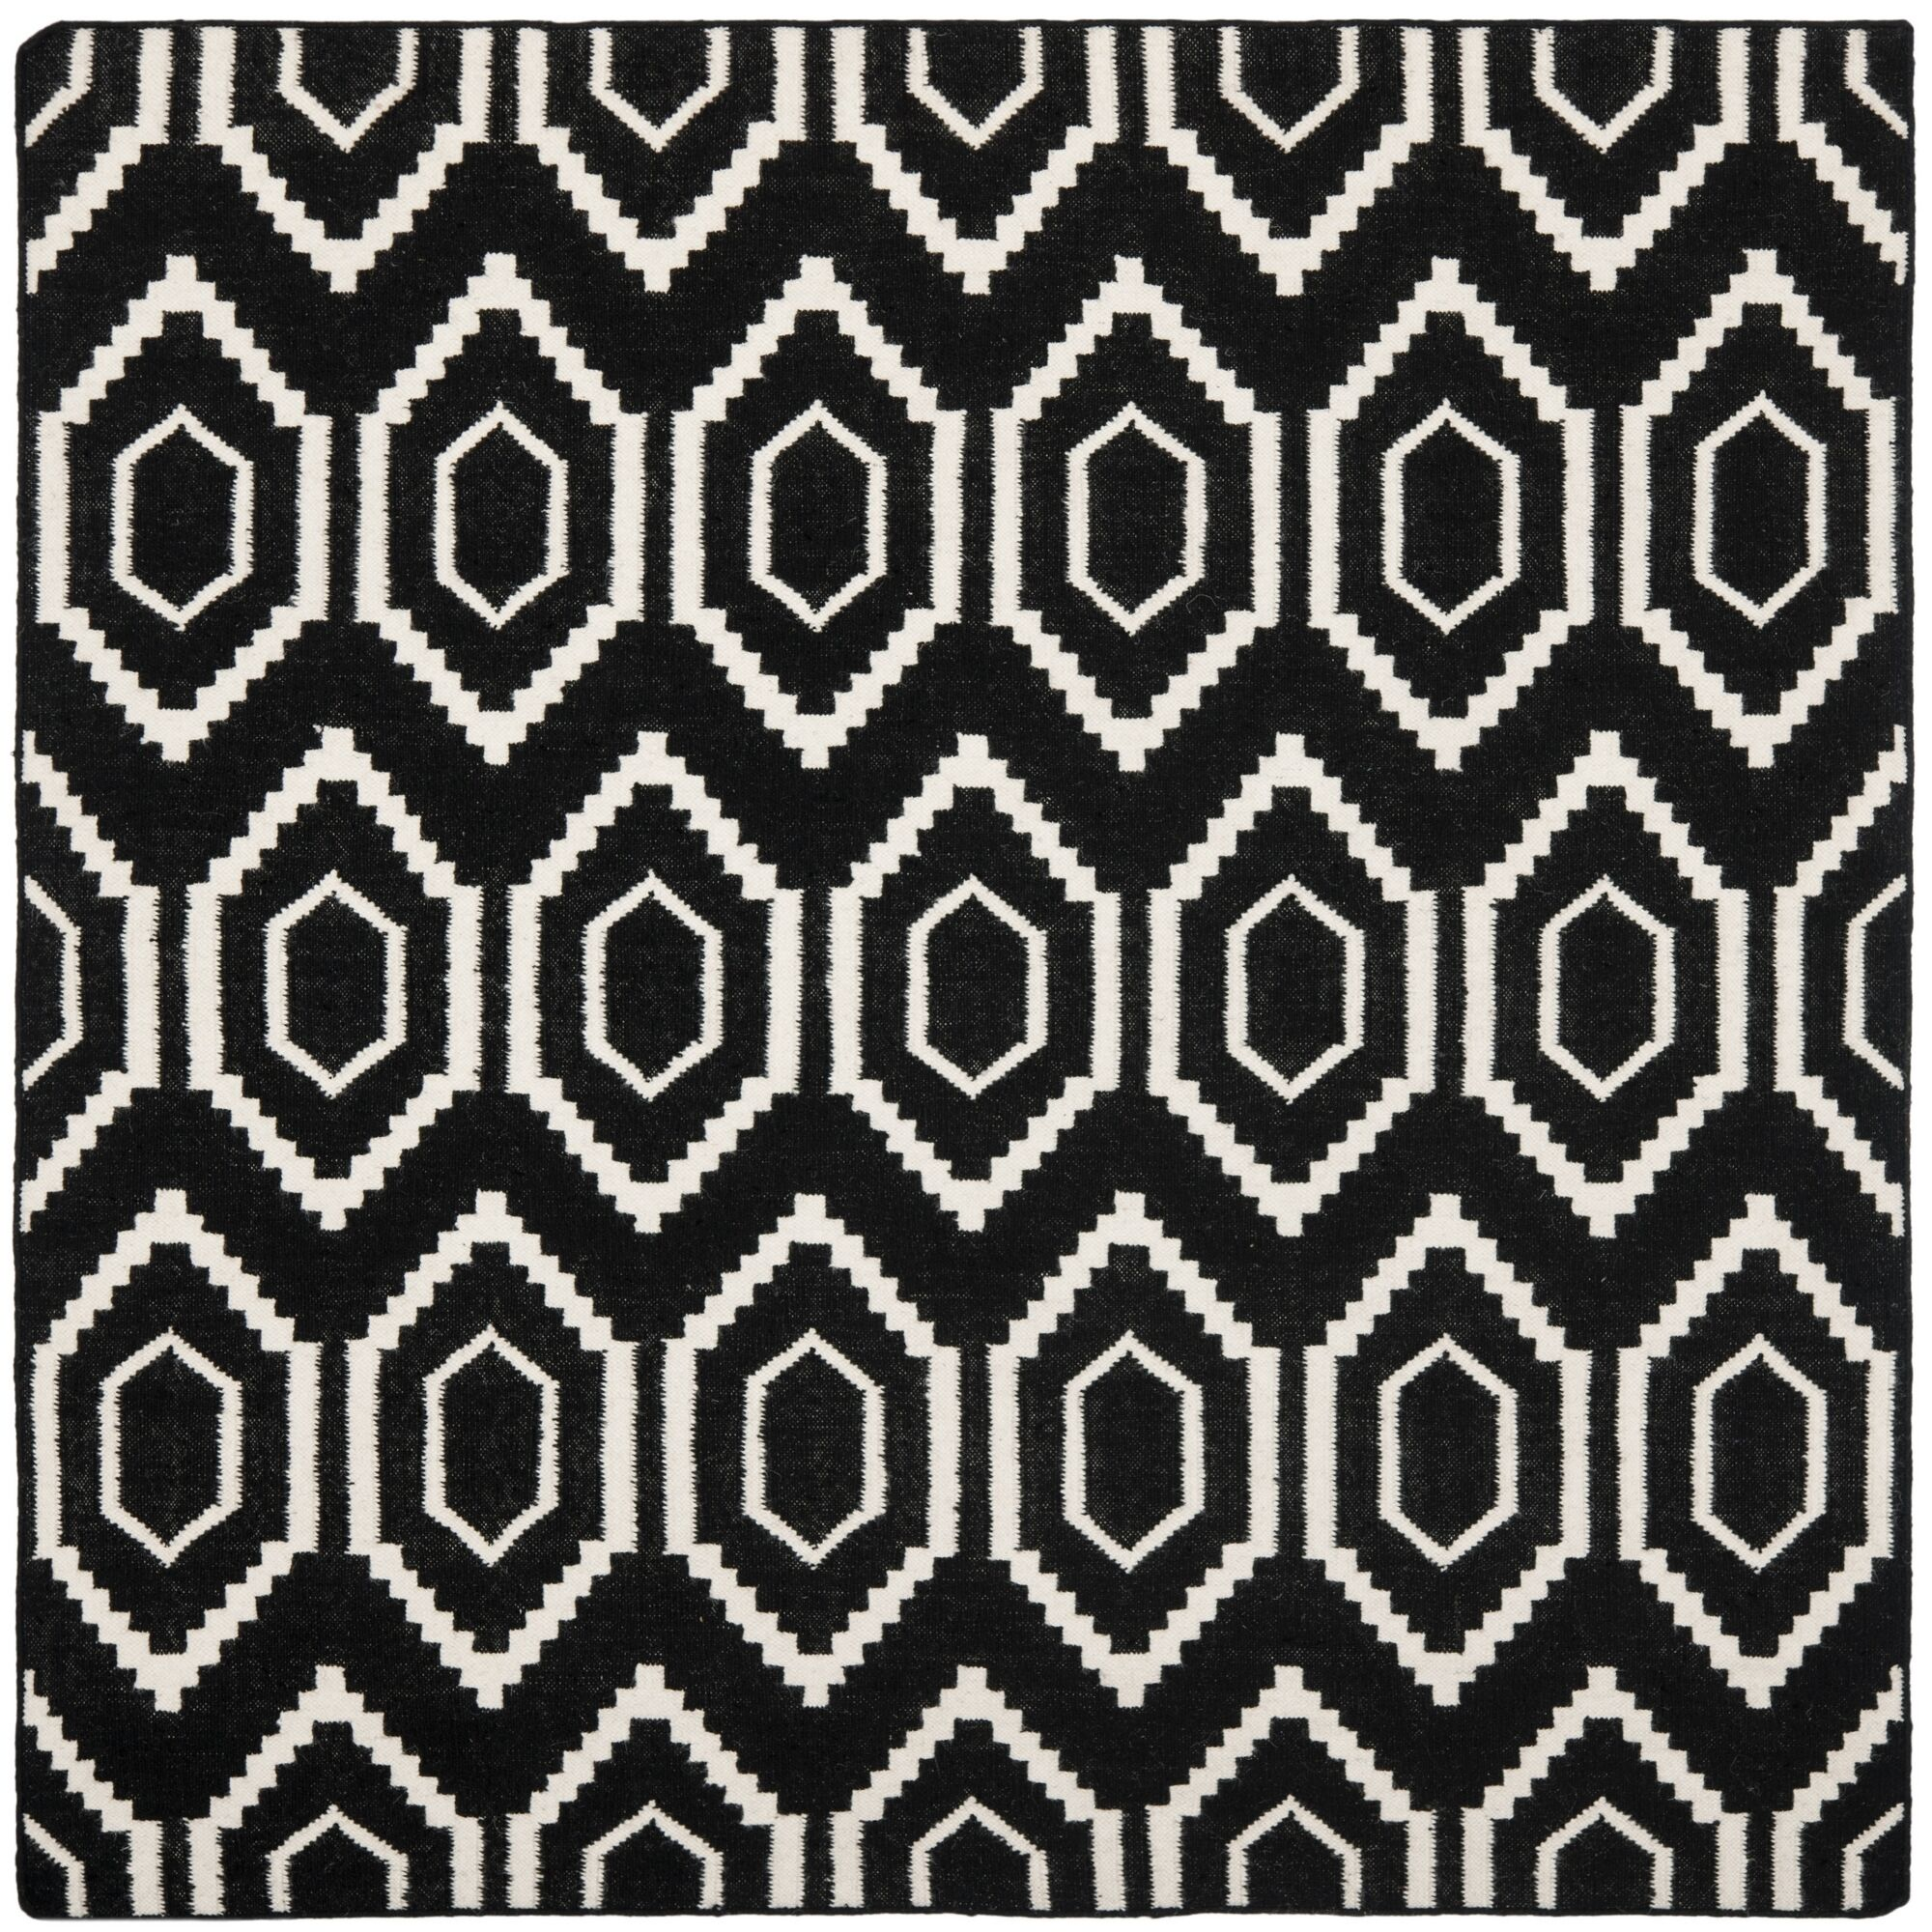 Crawford Hand-Woven Wool Black/Ivory Area Rug Rug Size: Square 8'